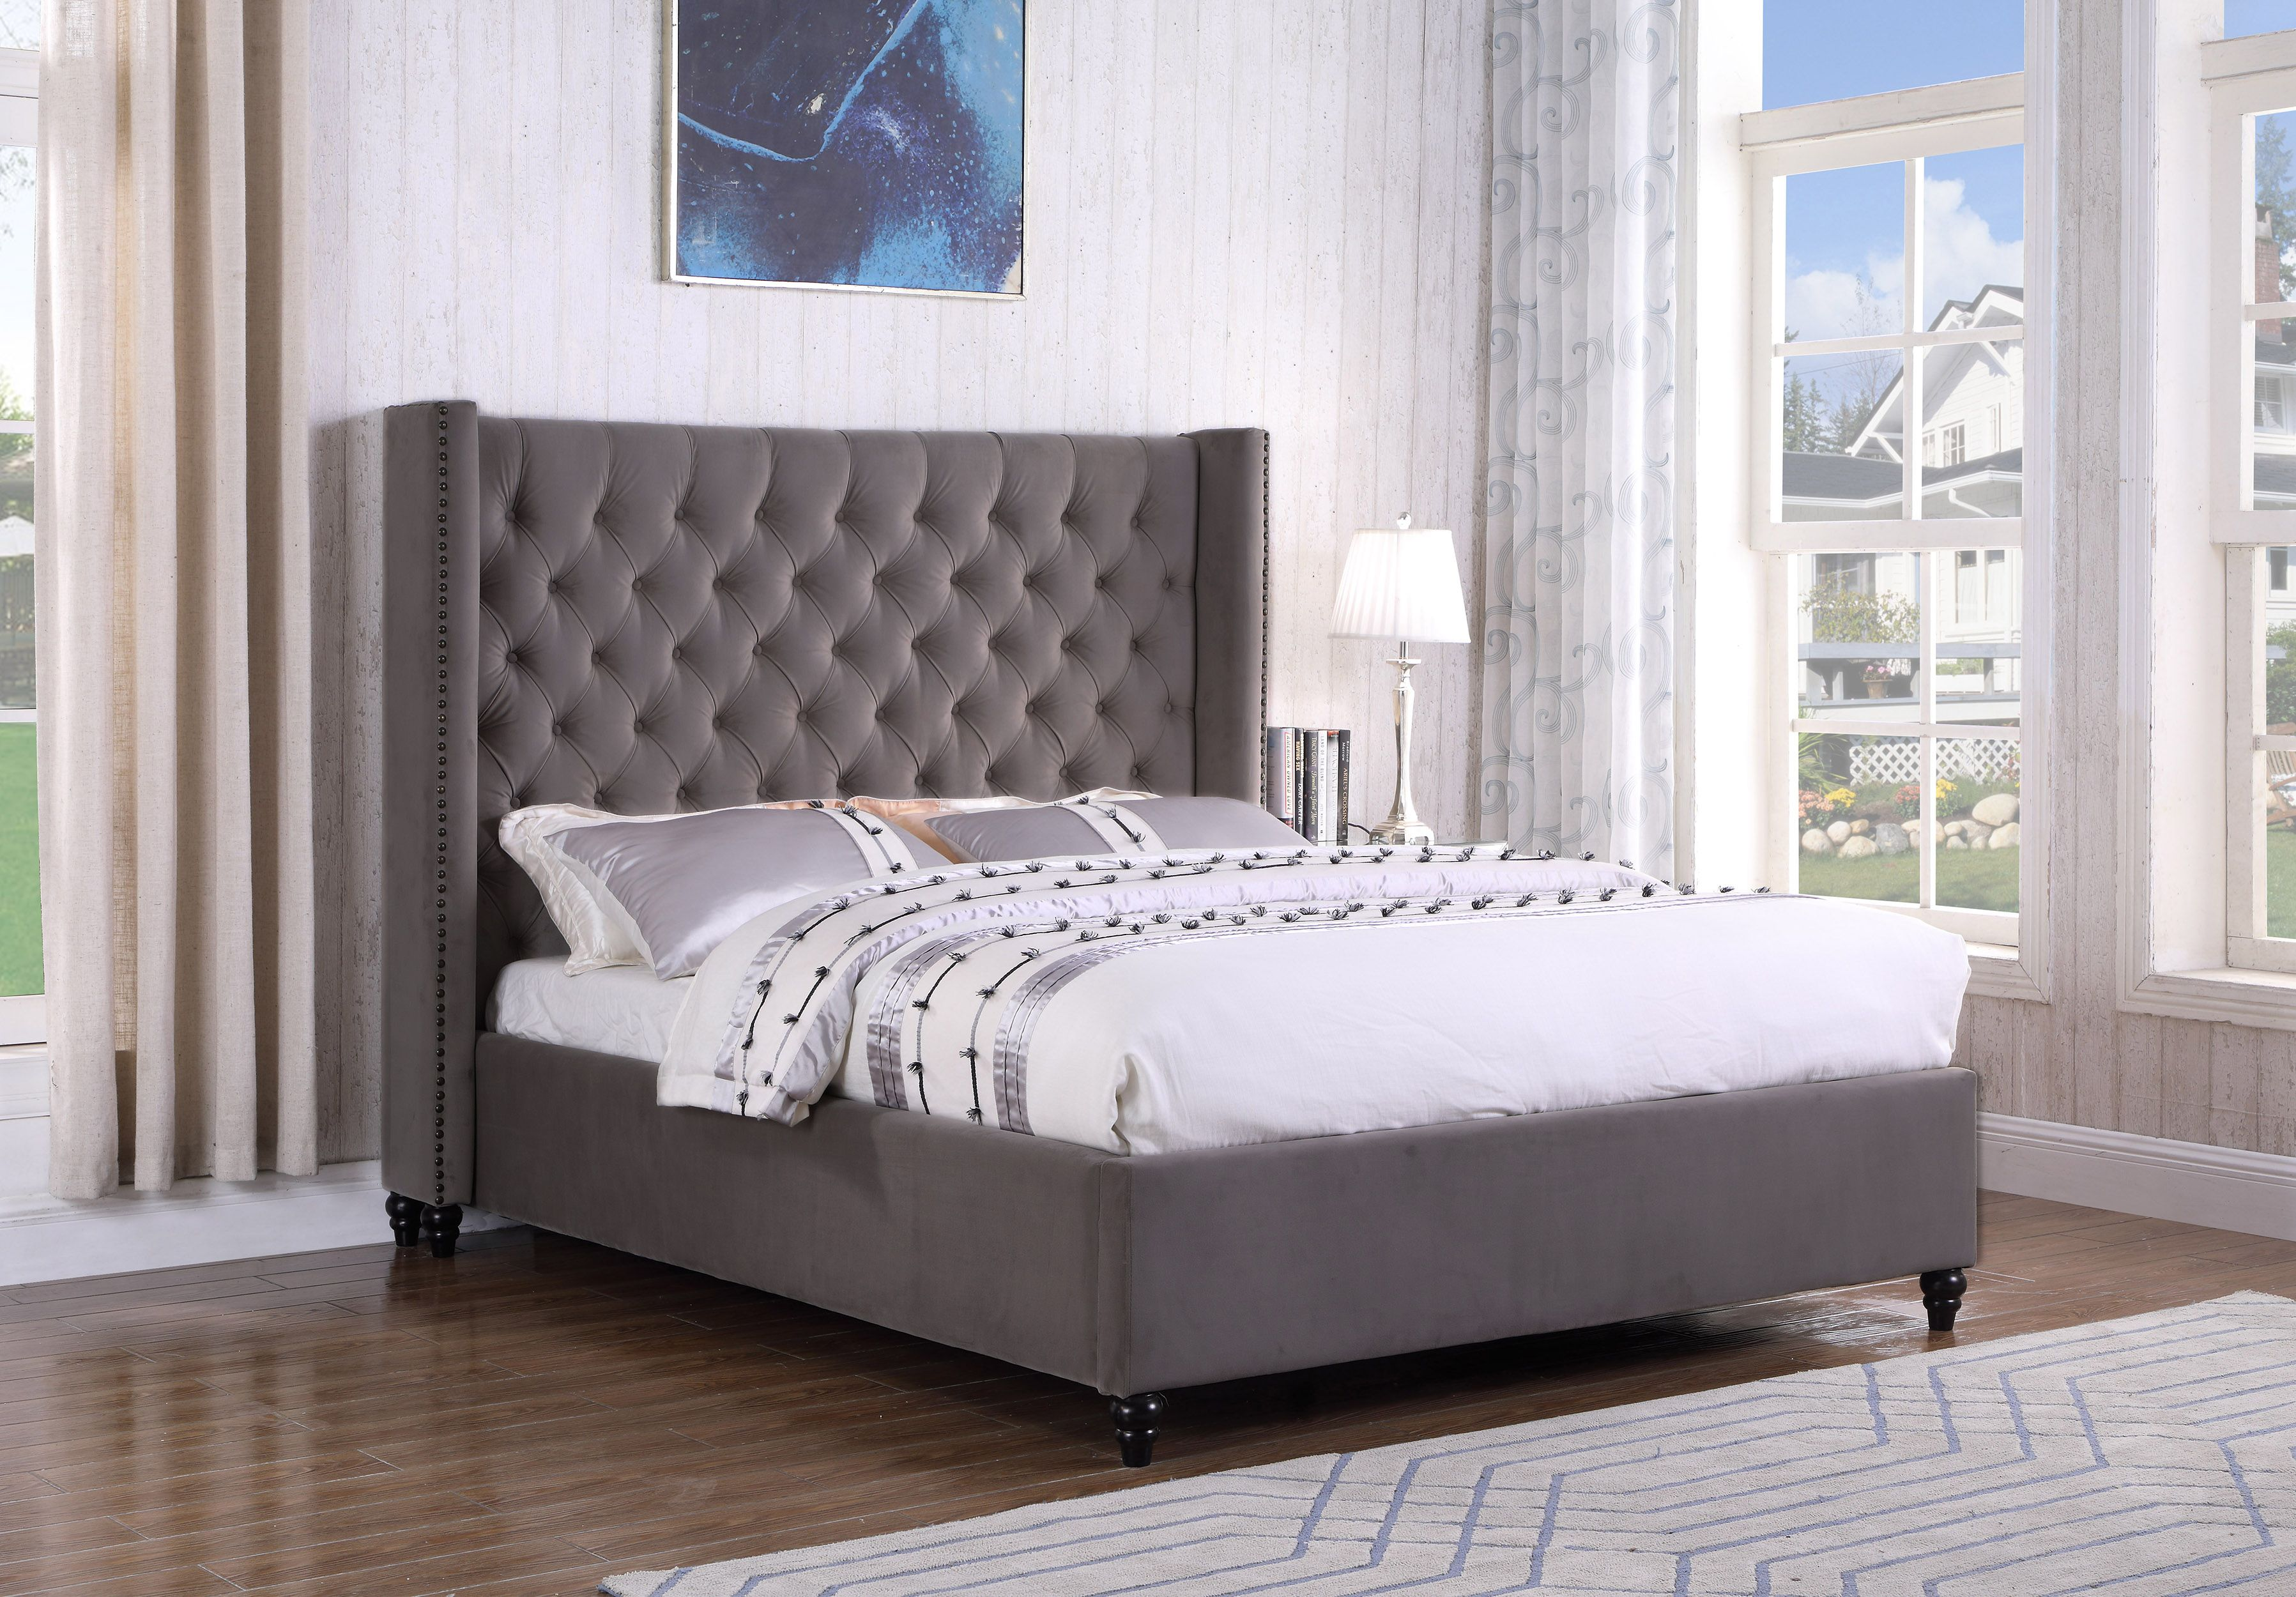 This Bed Sets A Neoclassic And Contemporary Design With Its Beautiful Warm Color It Is Upholster Queen Upholstered Bed Upholstered Sleigh Bed Upholstered Beds